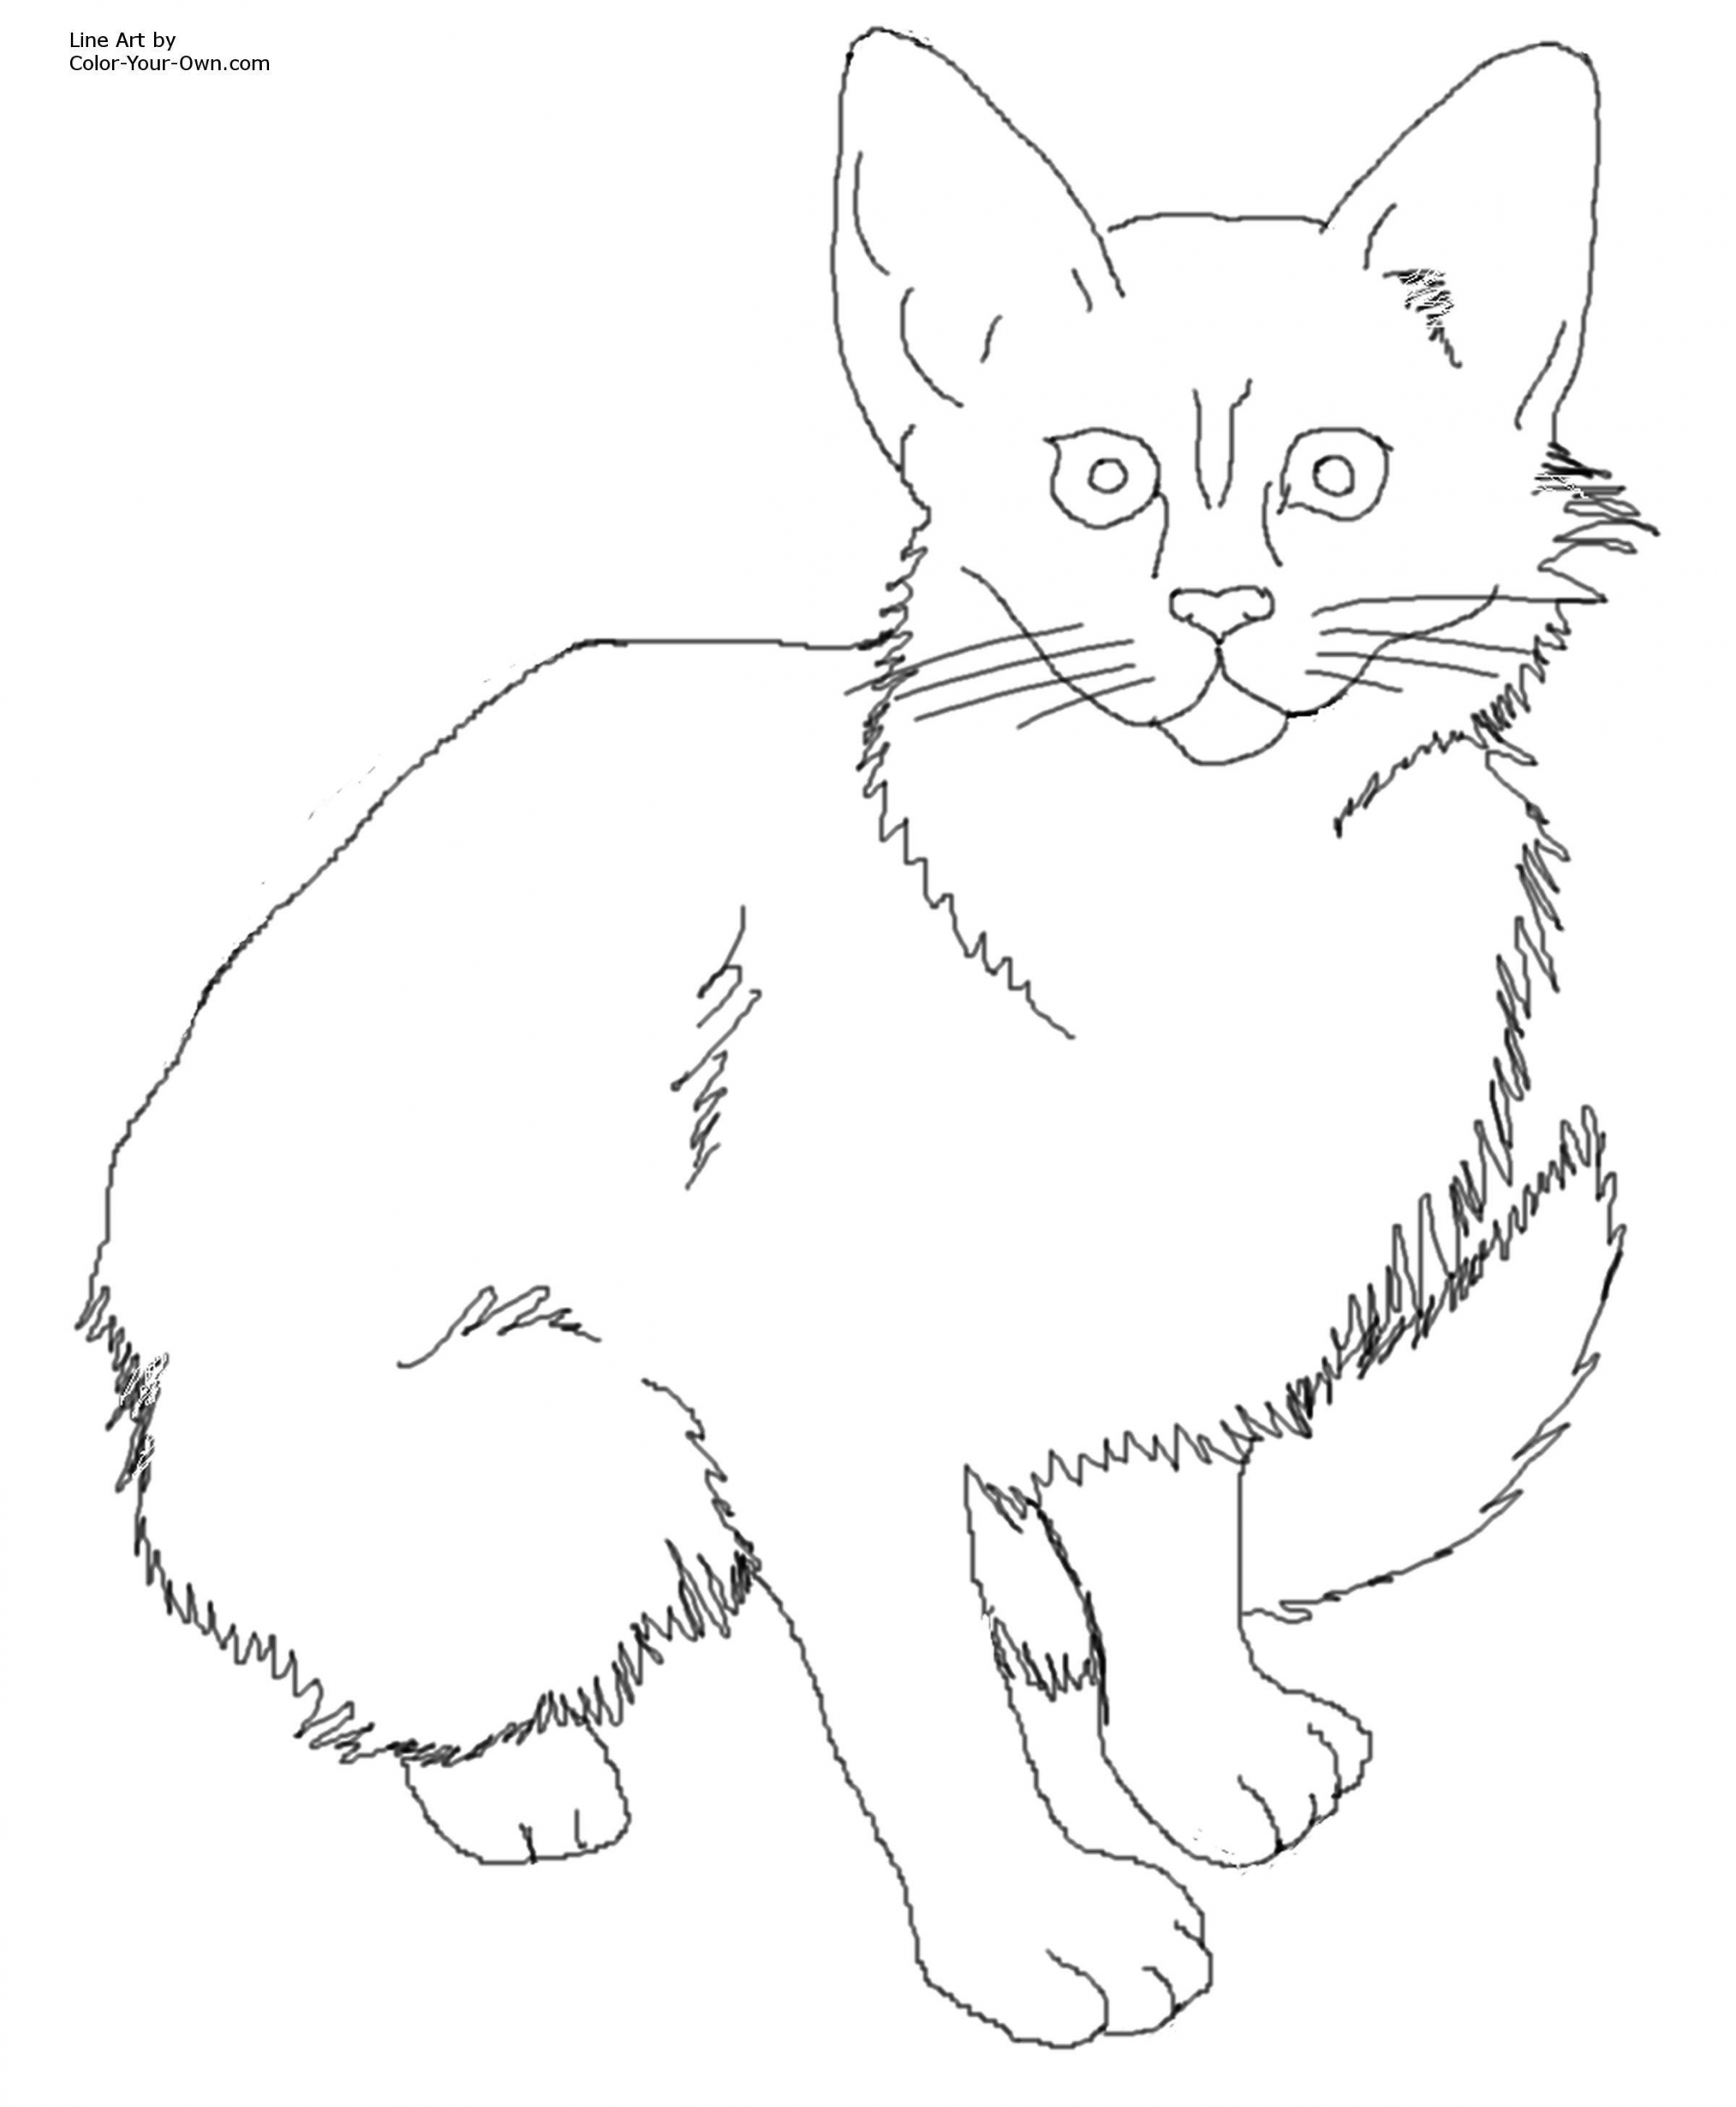 Calico Cat Coloring Page In 2020 Cat Coloring Page Animal Coloring Pages Horse Coloring Pages